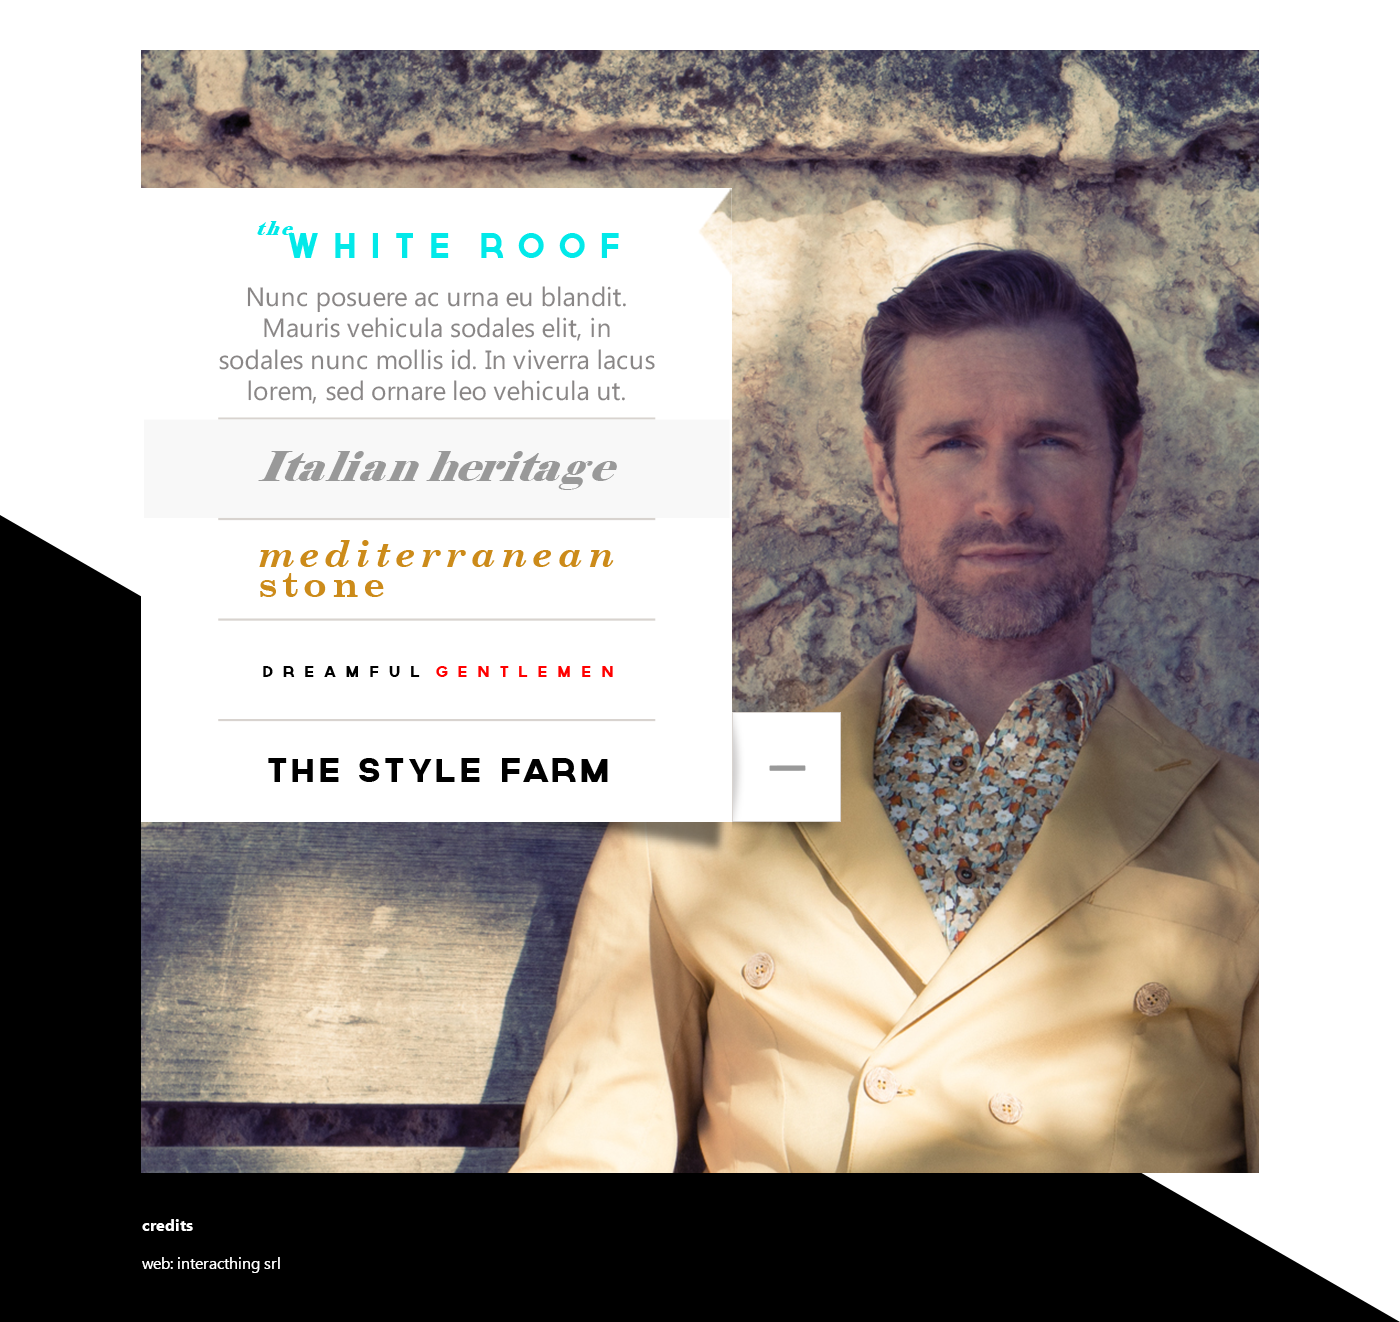 Website clothing boutique made in italy Neill Katter the white roof italian heritage dreamful gentlemen kids mediterranean stone Layout clothes vestiti Abbigliamento